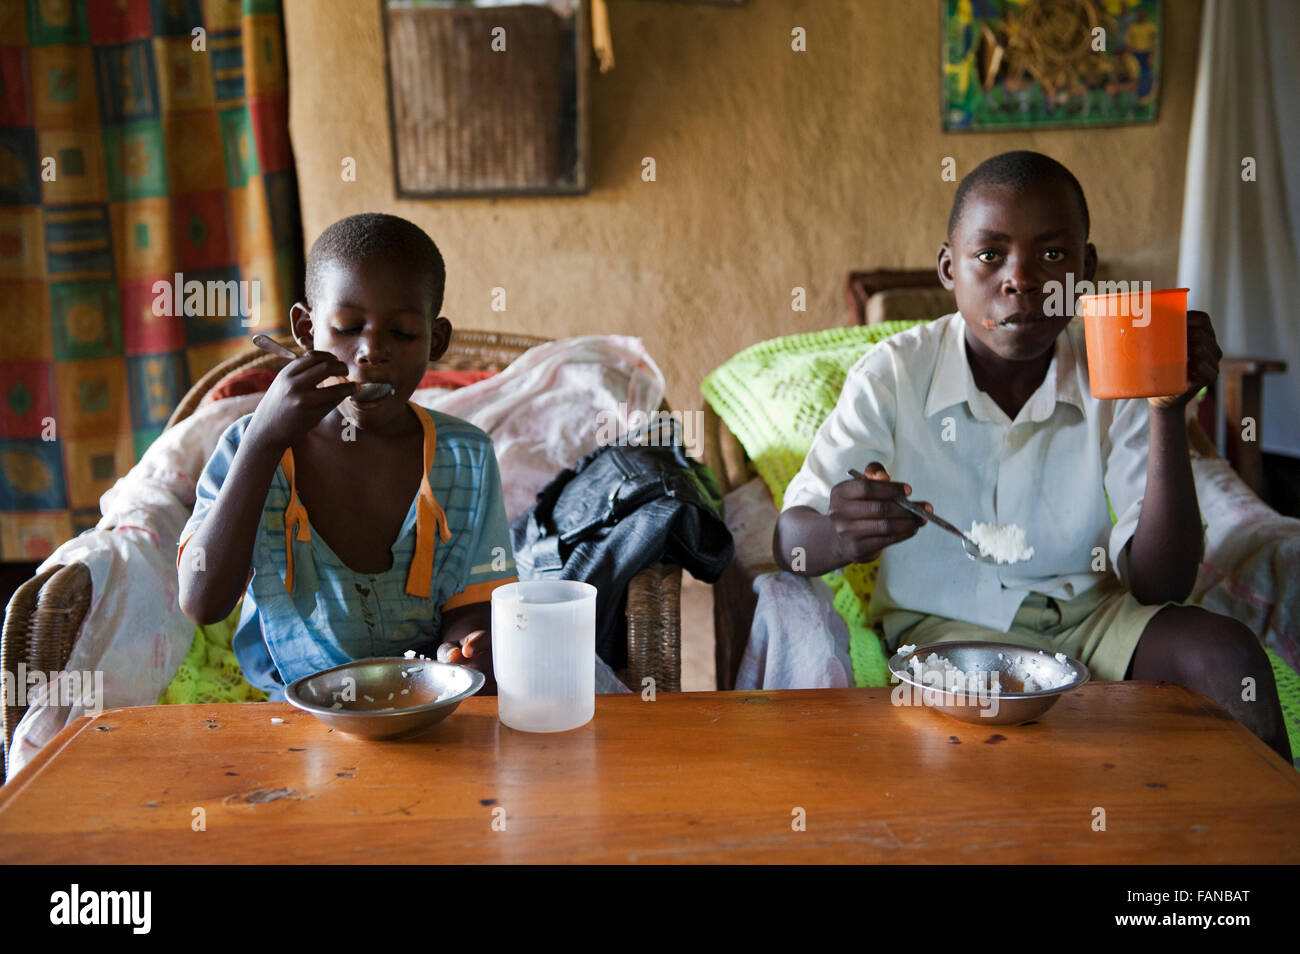 Family enjoying a meal of boiled rice around table  in their home, Kenya. Stock Photo